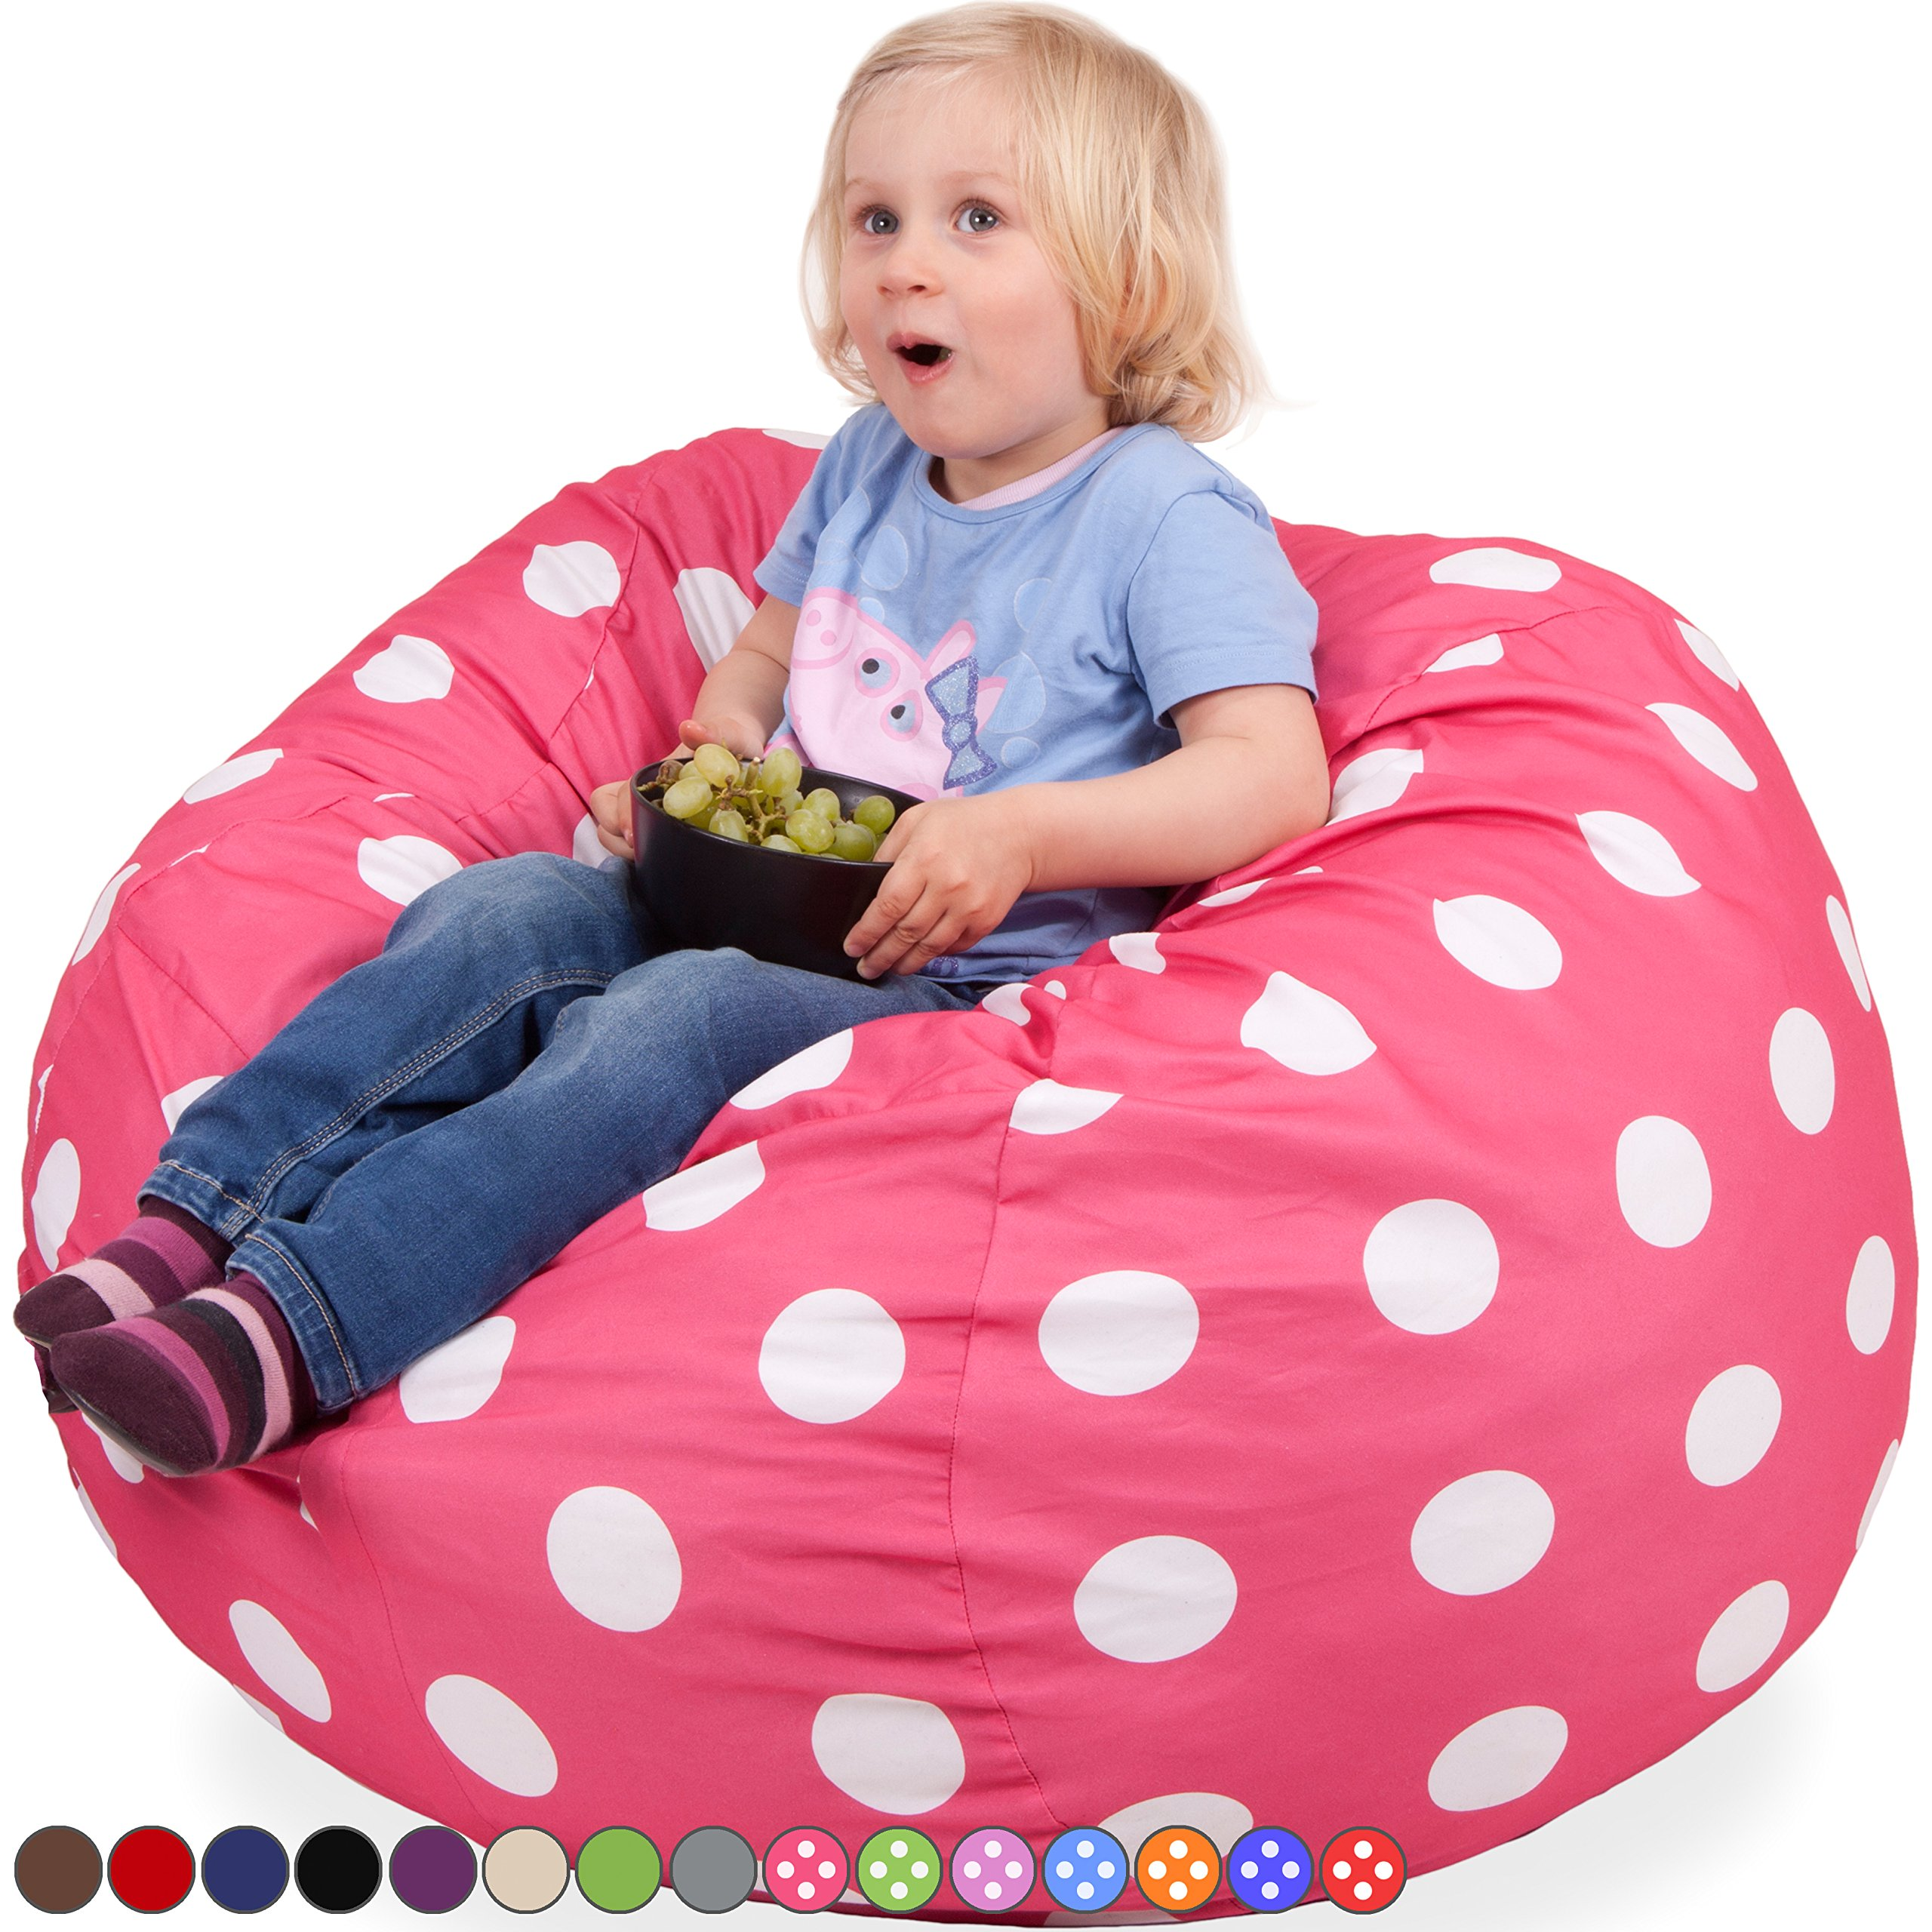 additional about beanbag chair chairs cool with pink bean bag remodel styles of